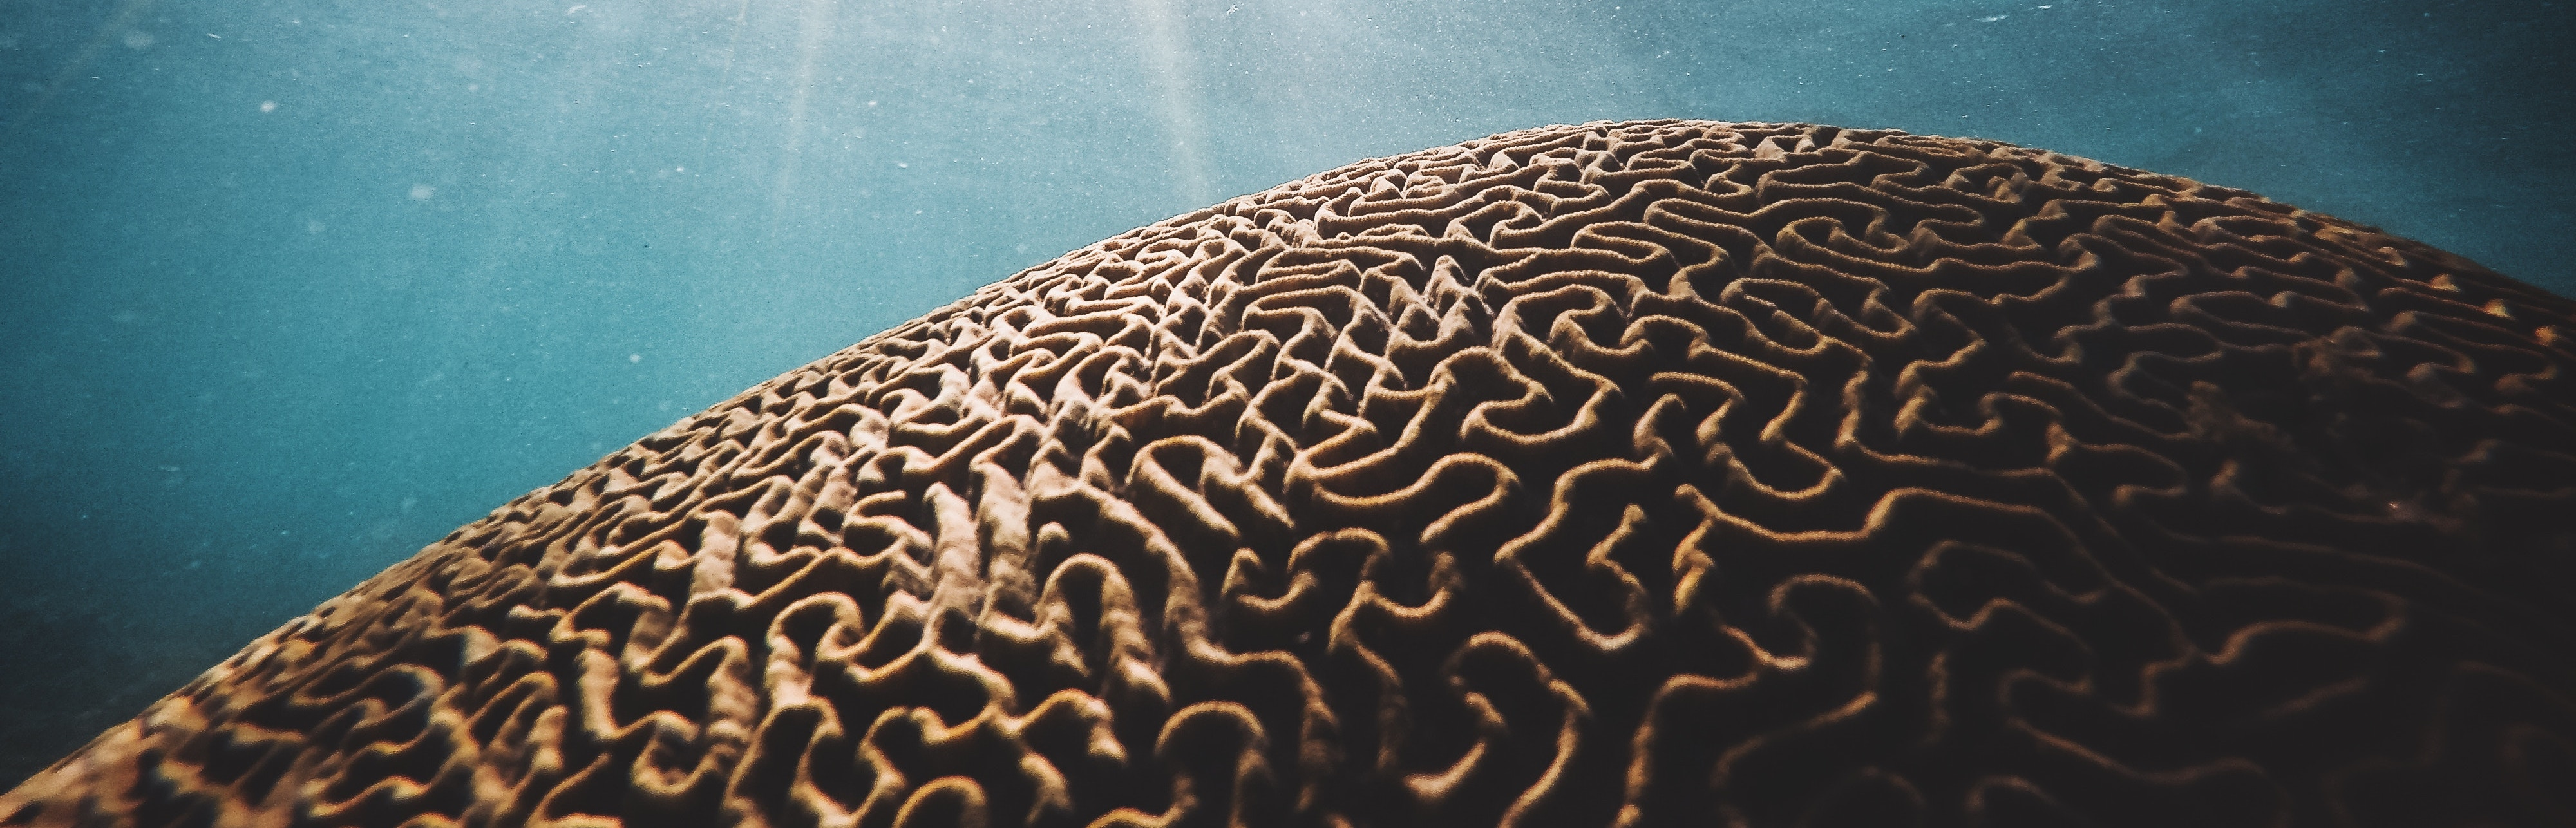 brain-coral-deep-learning